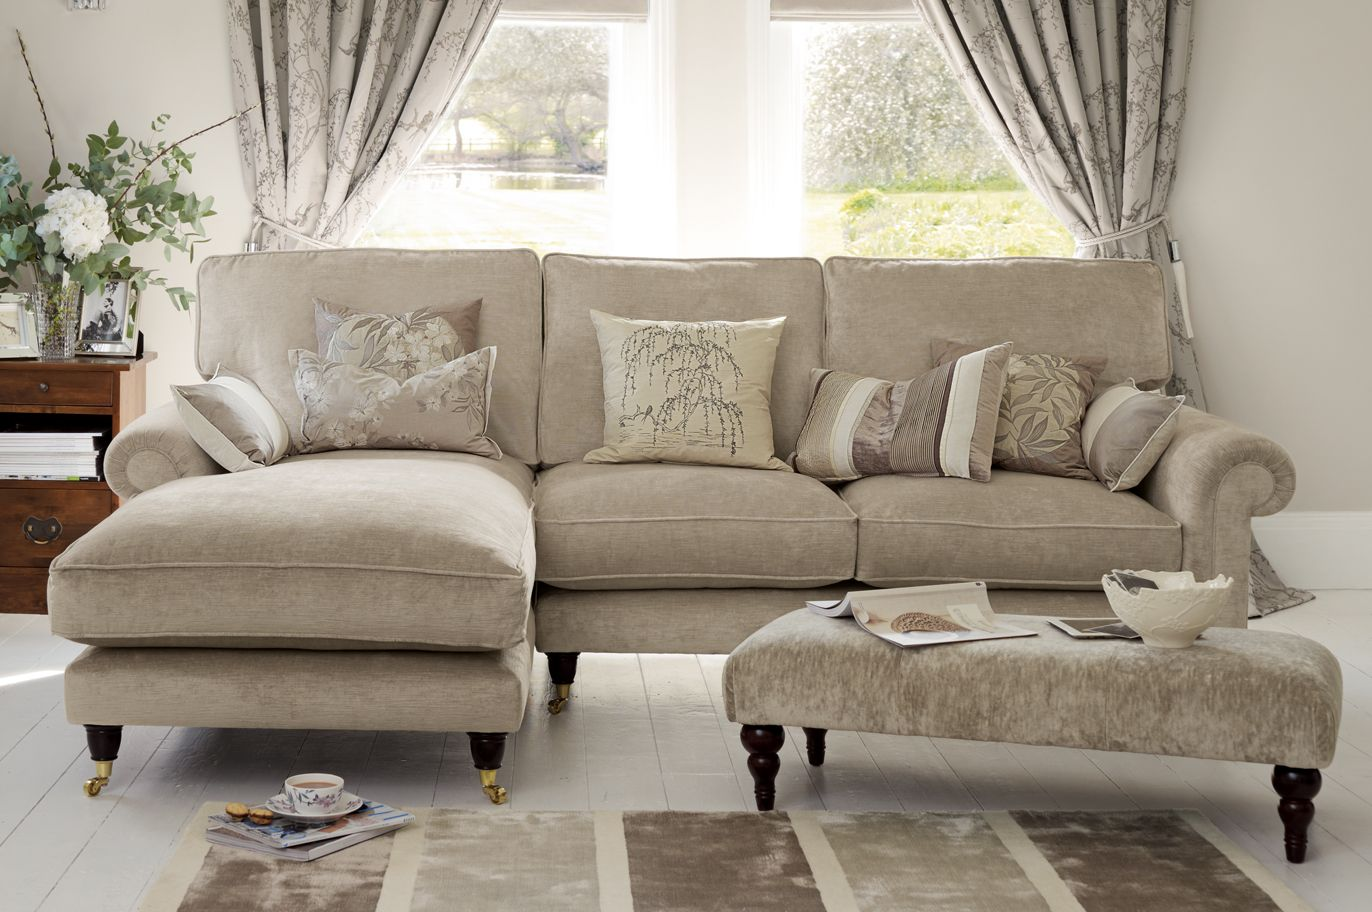 Kingston Sectional Sofa With Chaise In Sable Beige From